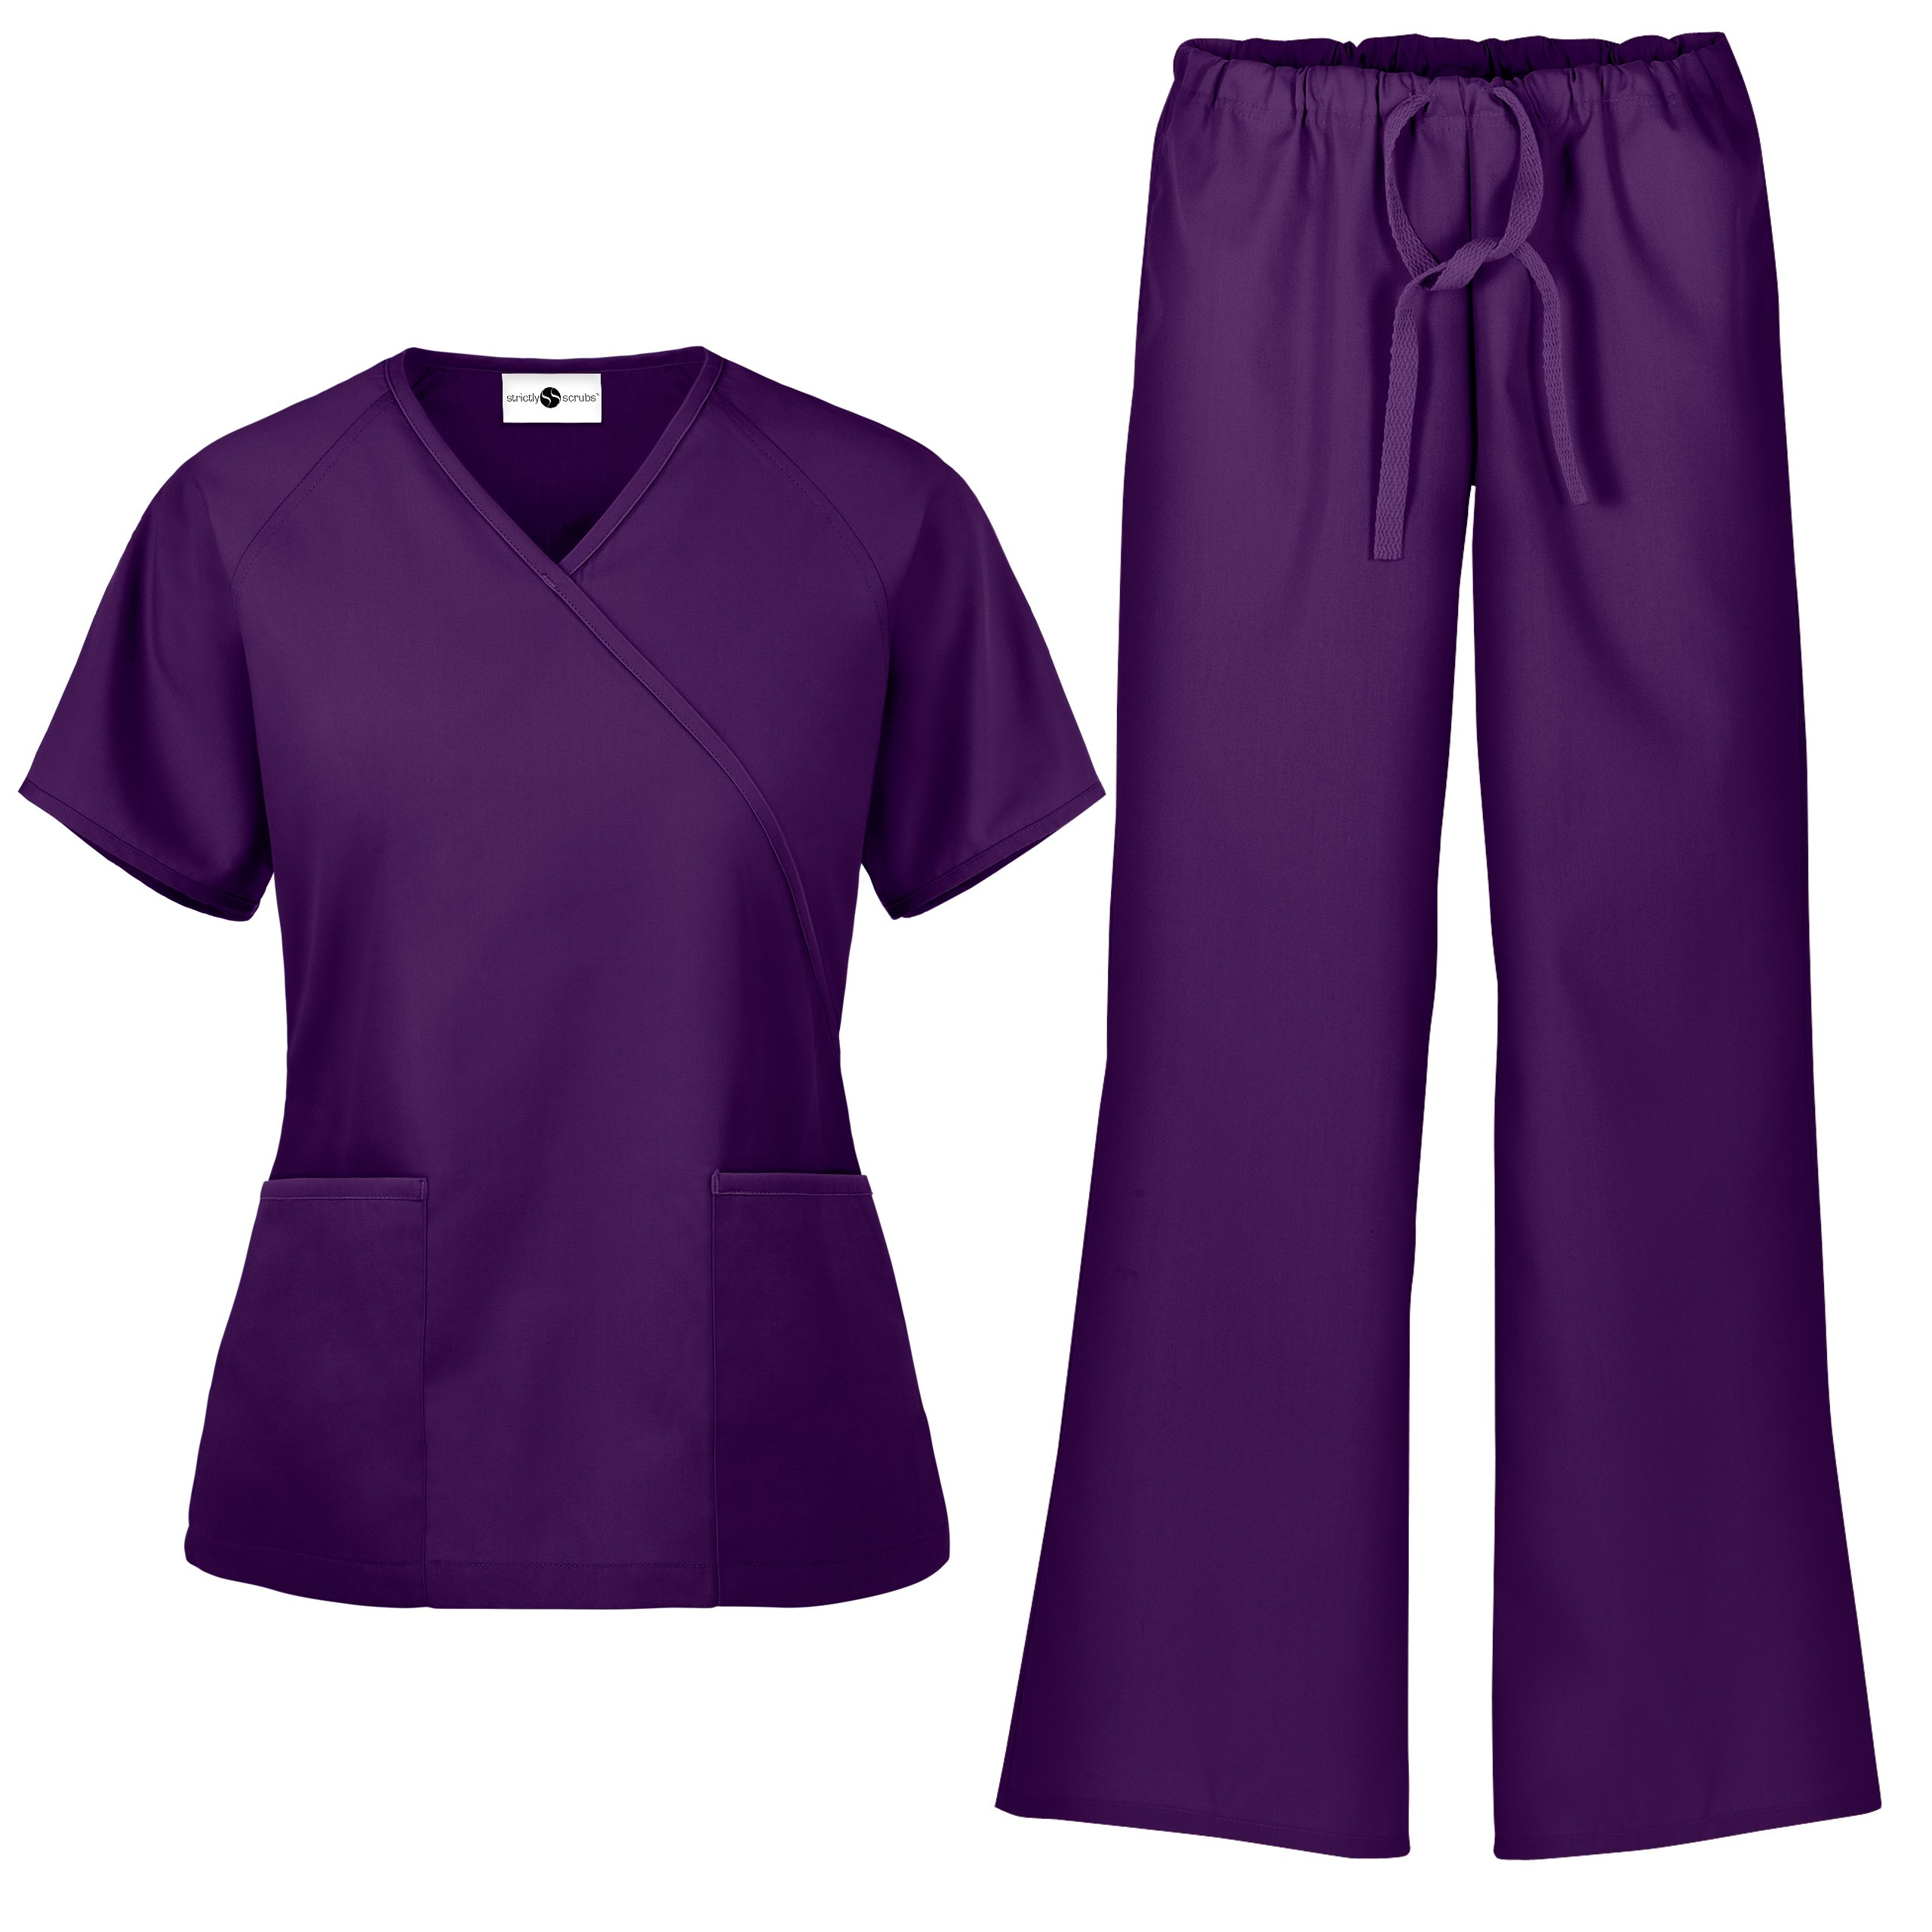 Women's Scrub Set/Medical Mock Wrap Top & Drawstring Scrub Pant (XS-3X, 7 Colors) (X-Large, Eggplant)